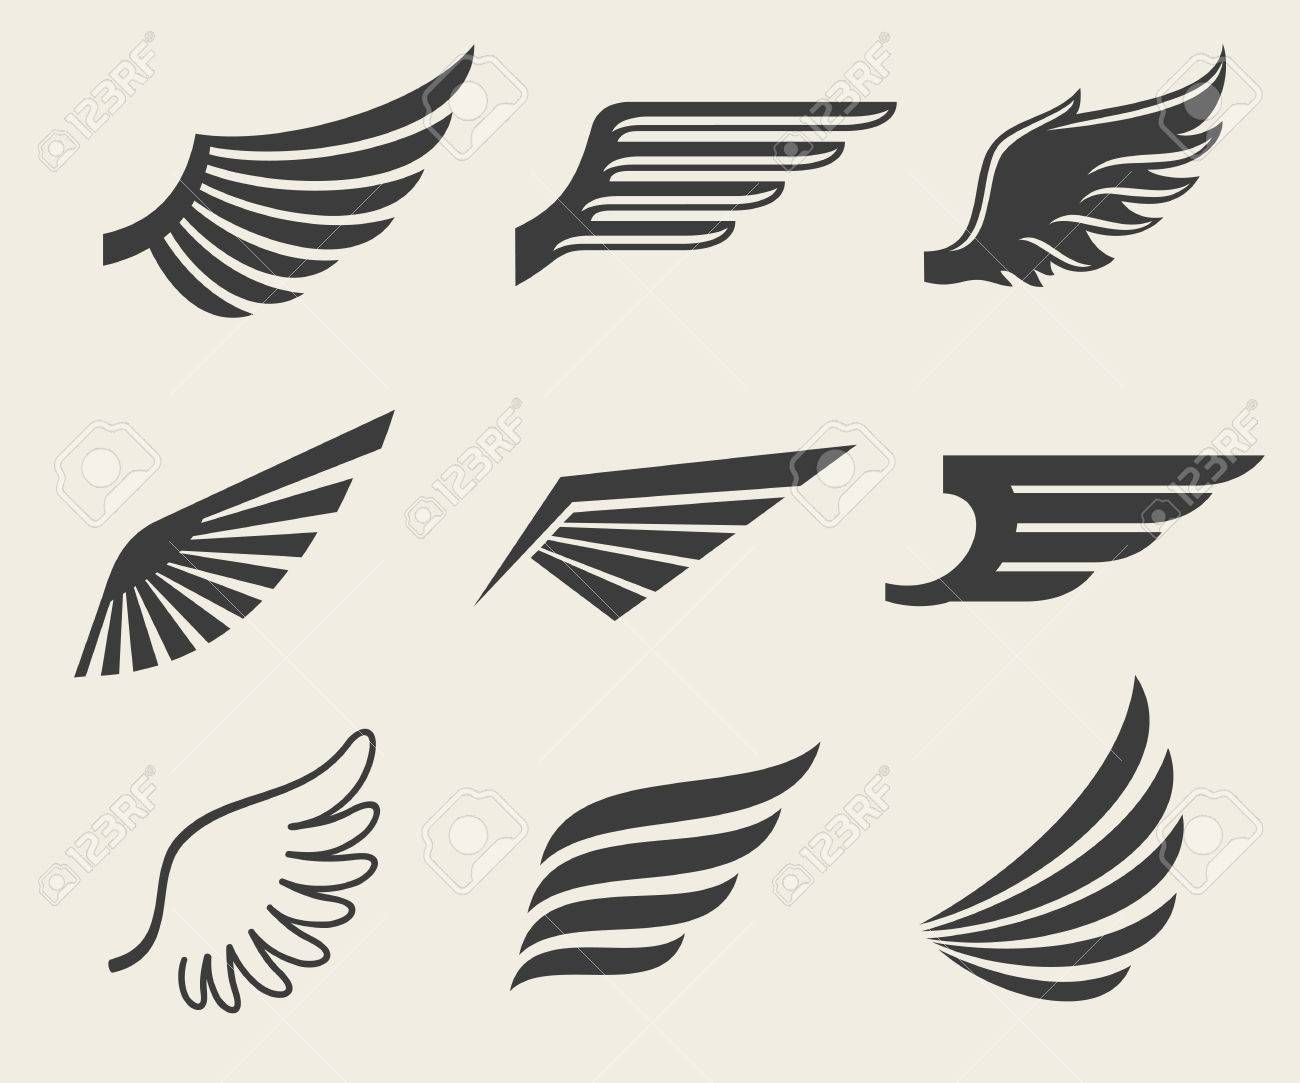 Wings vector icons set. Wing set, icon wing, feather wing bird illustration - 55591075